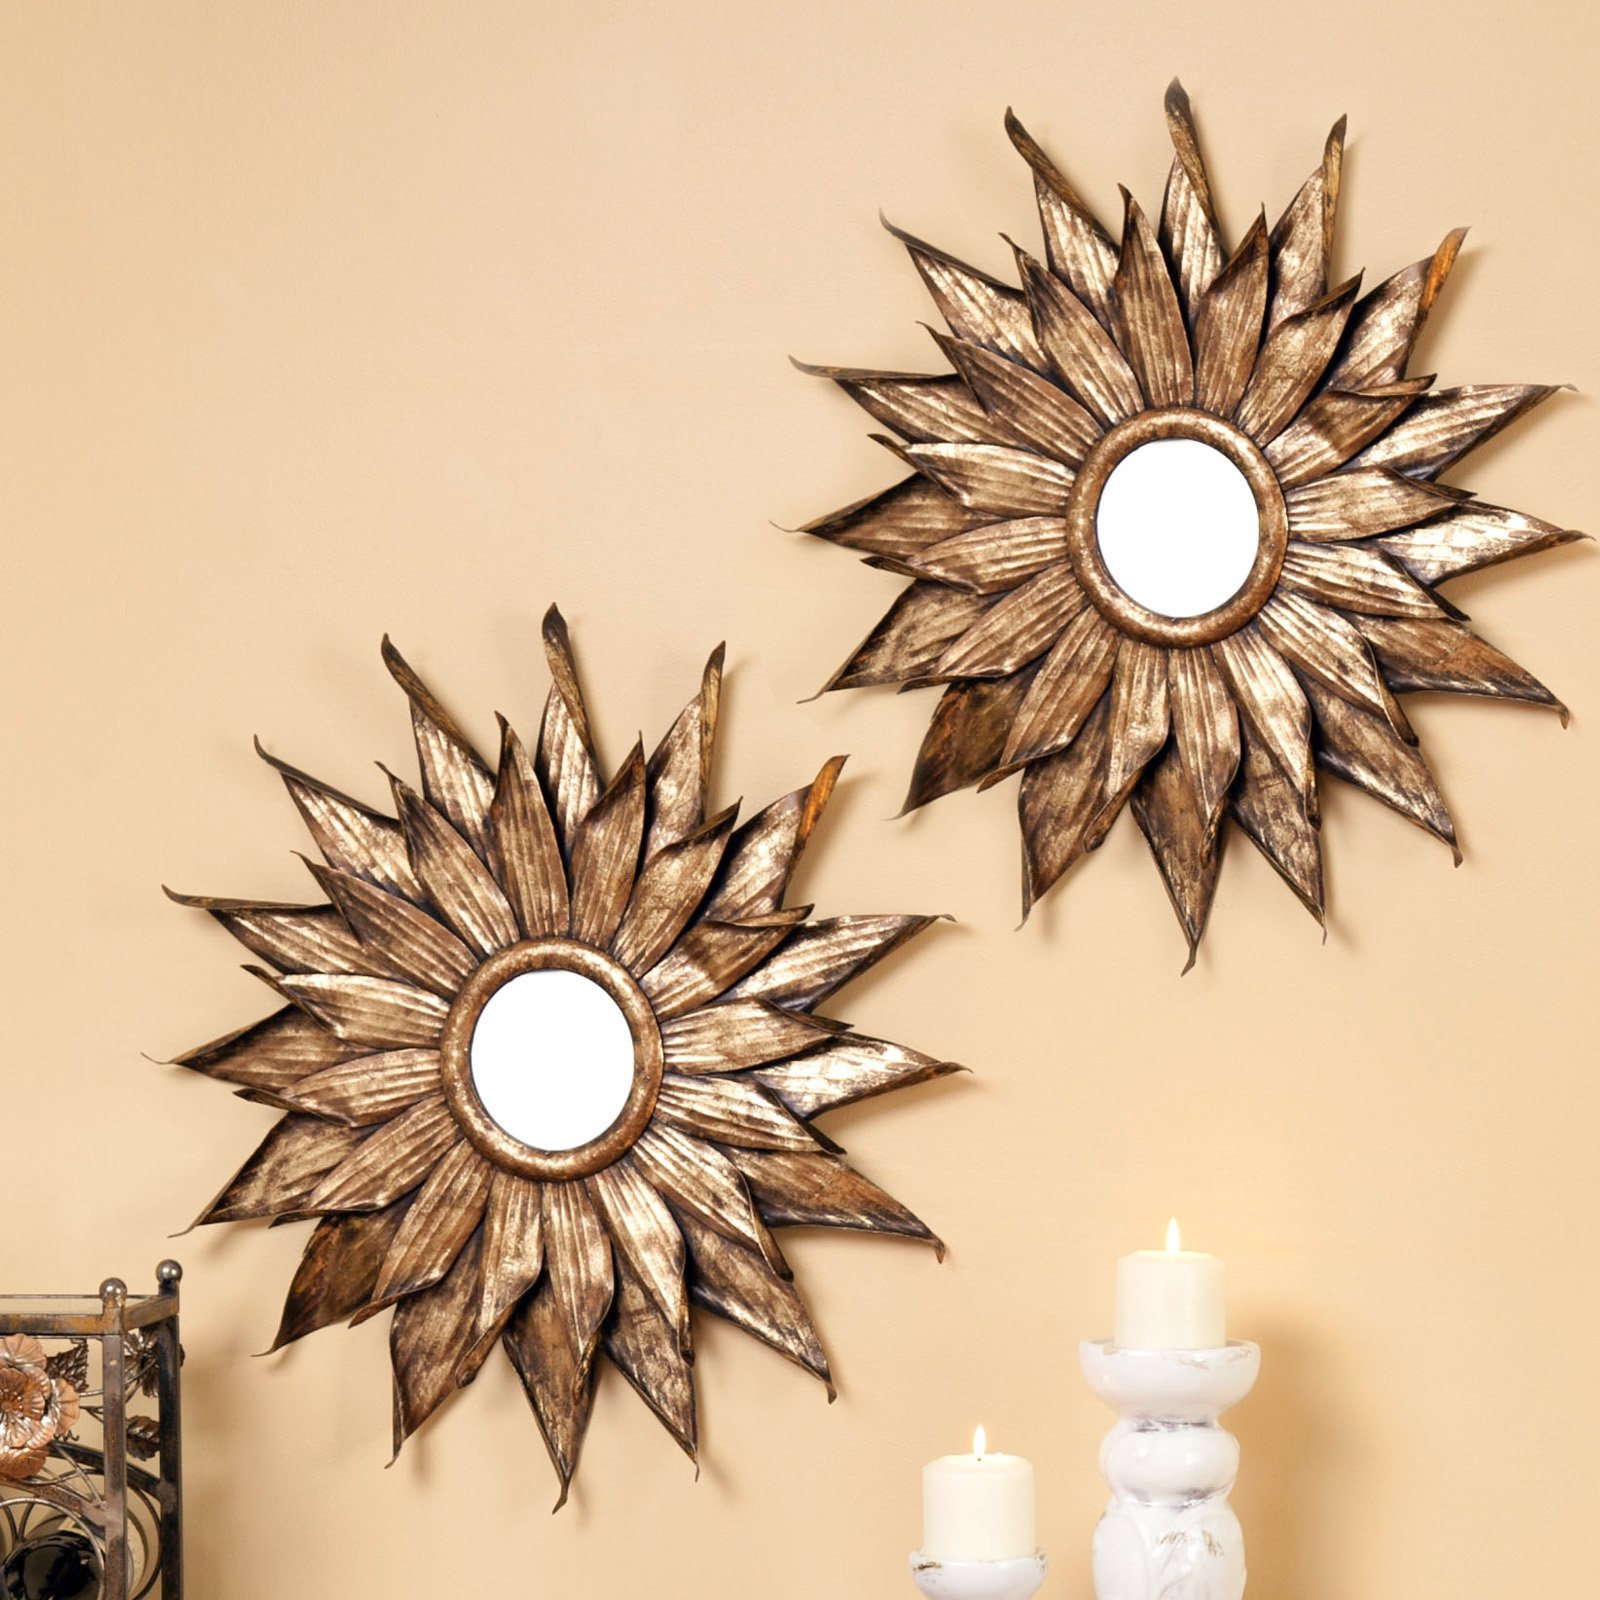 Cheap Decorative Wall Mirrors Pertaining To Latest Decorative Wall Mirrors Ideas Basement Mattress Mirror Makeover Diy (View 6 of 20)